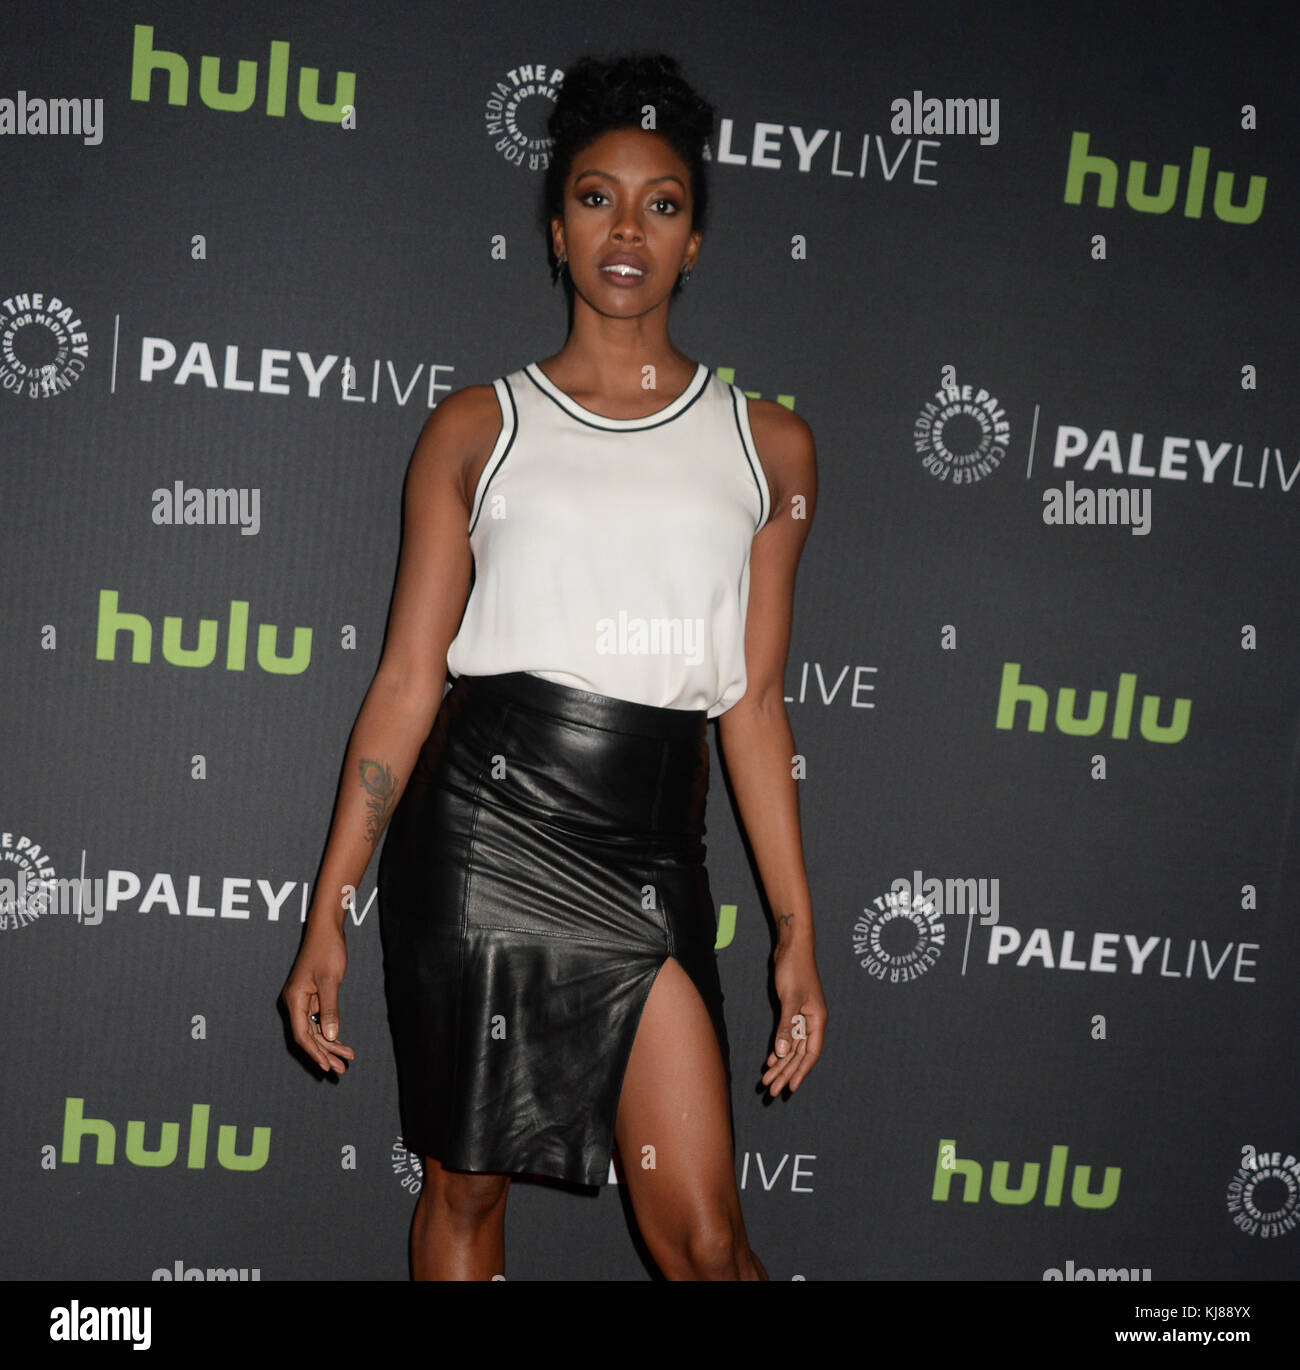 Topless Condola Rashad naked photo 2017